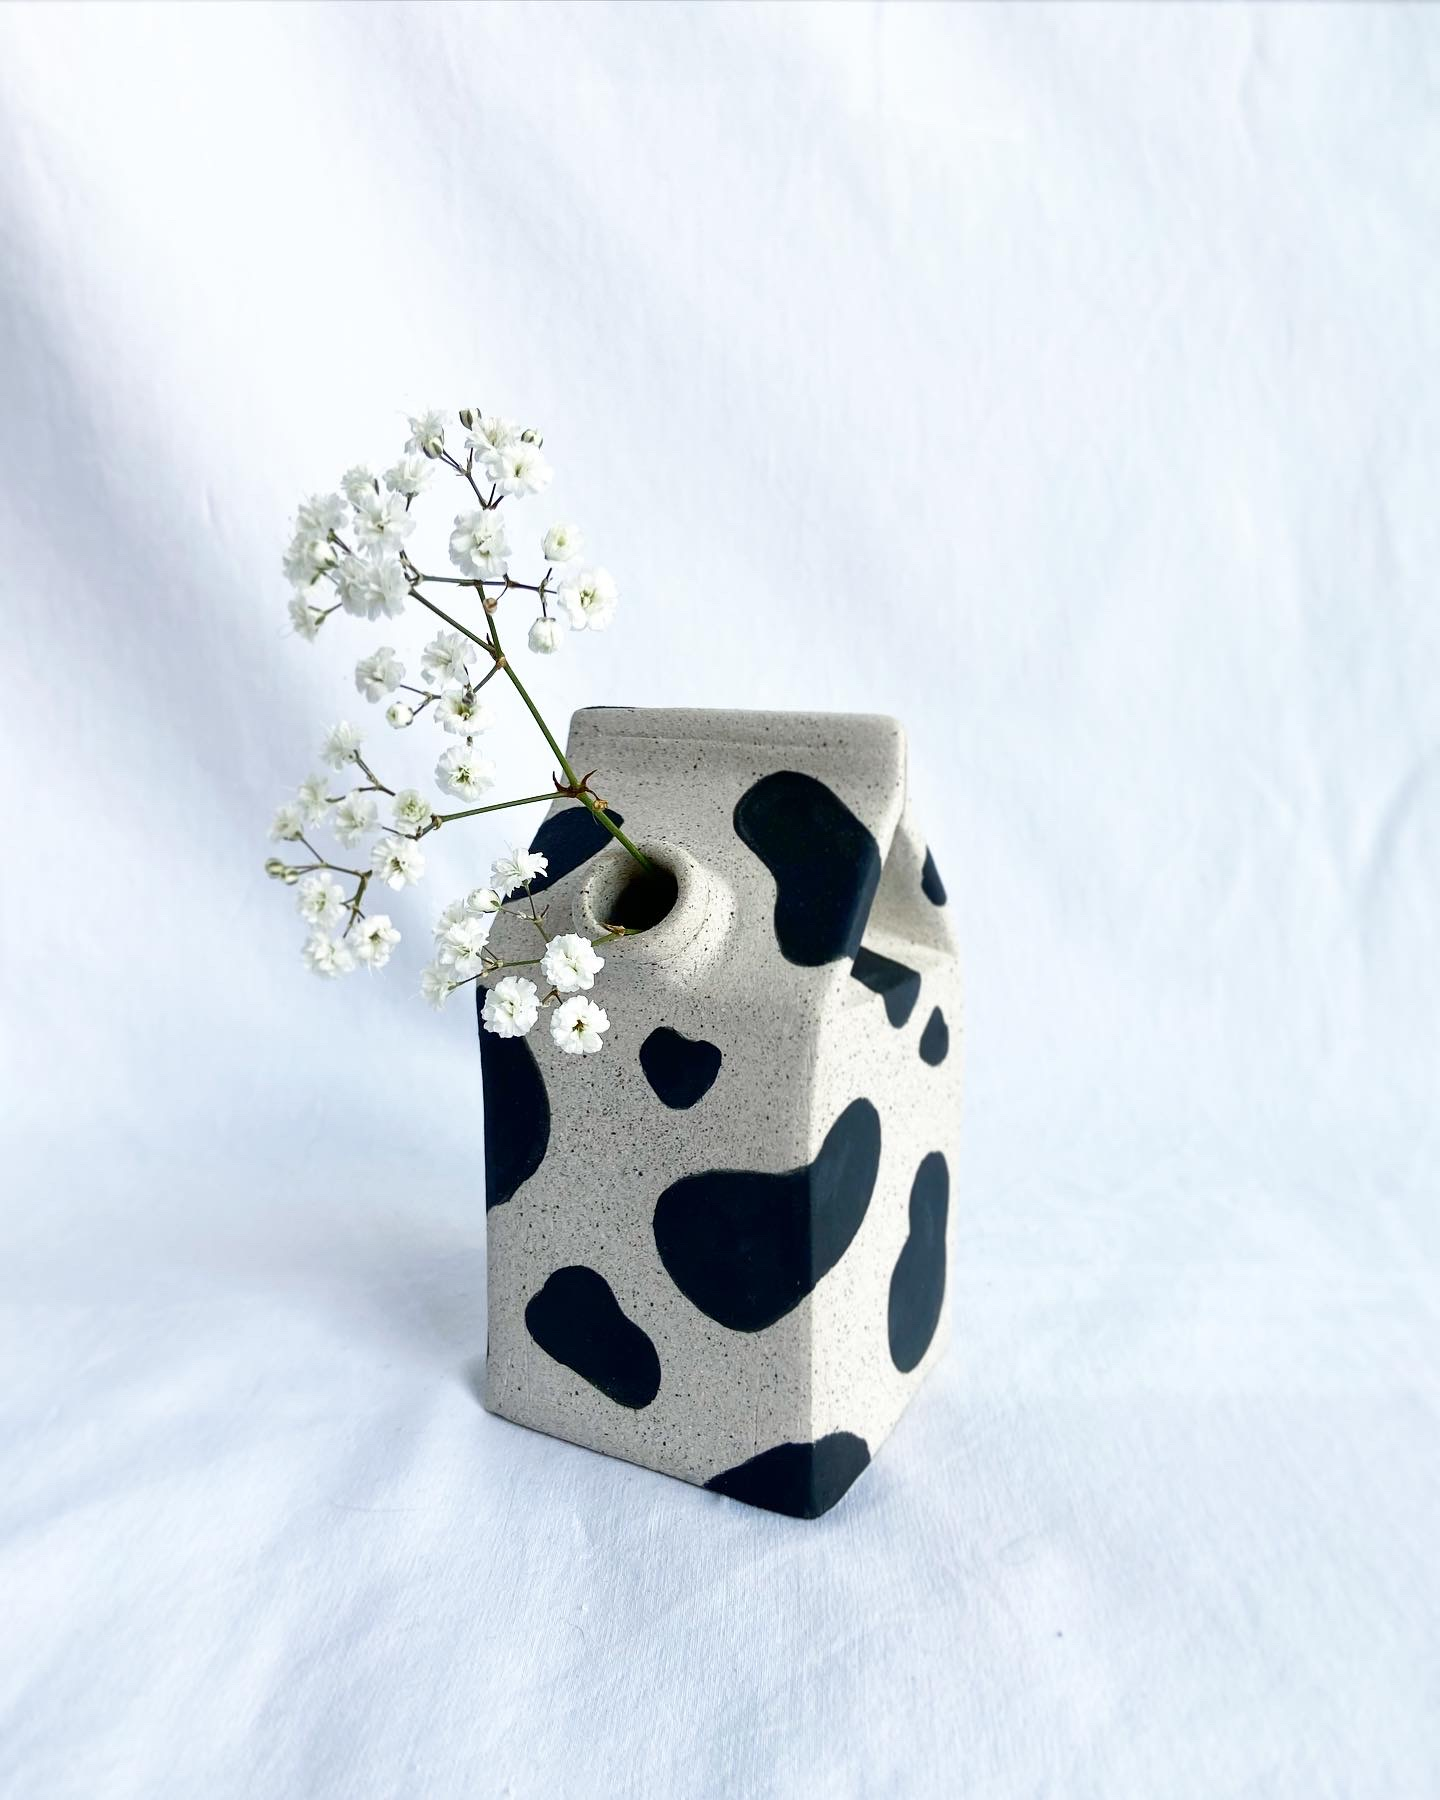 Moo Carton Vase By Kya Biant (Home Exhibition)